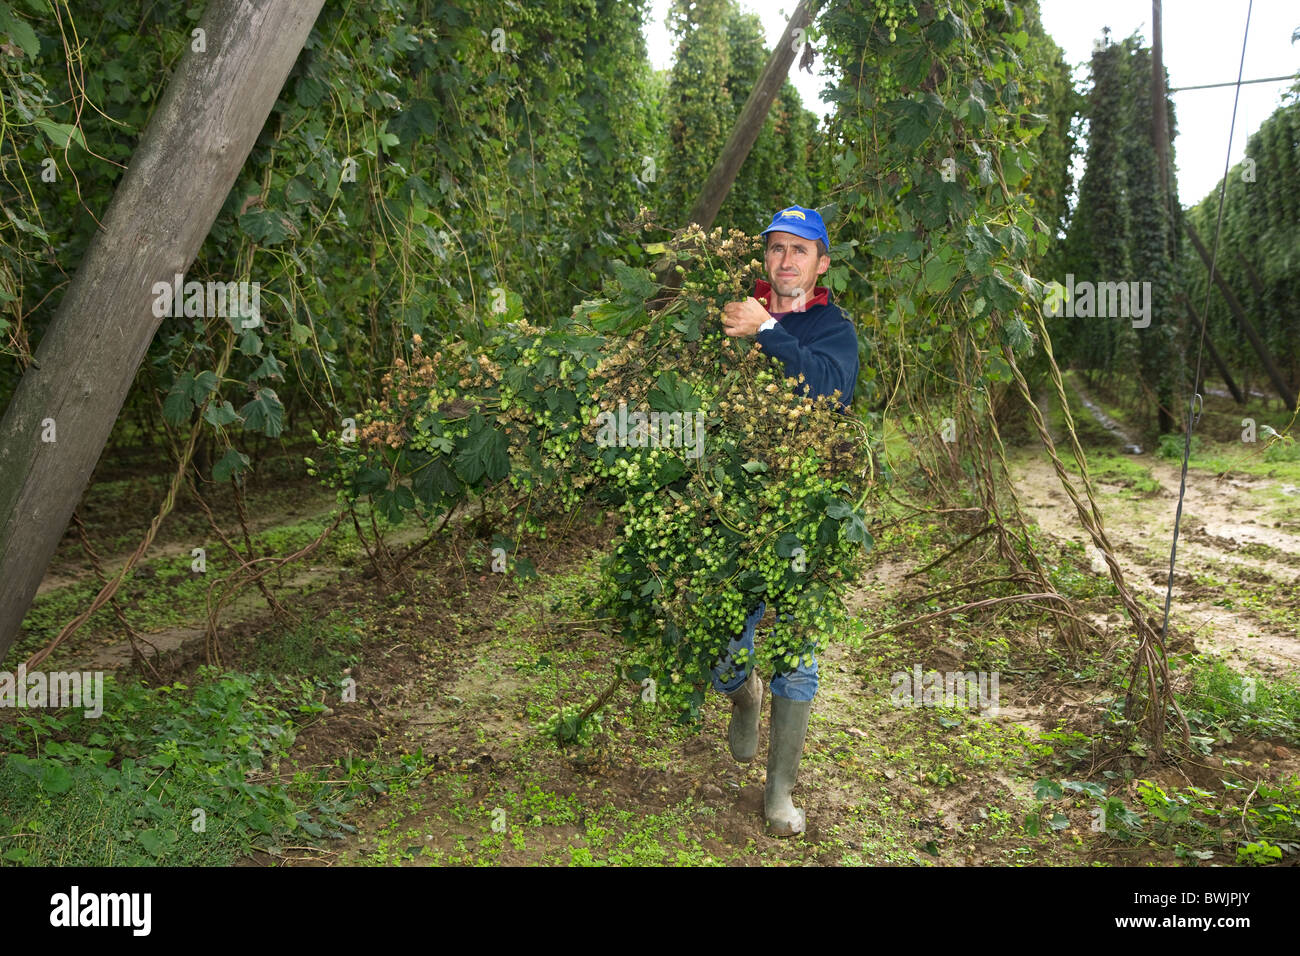 Harvesting of hops (Humulus lupulus) in hop yard in Poperinge, Belgium - Stock Image